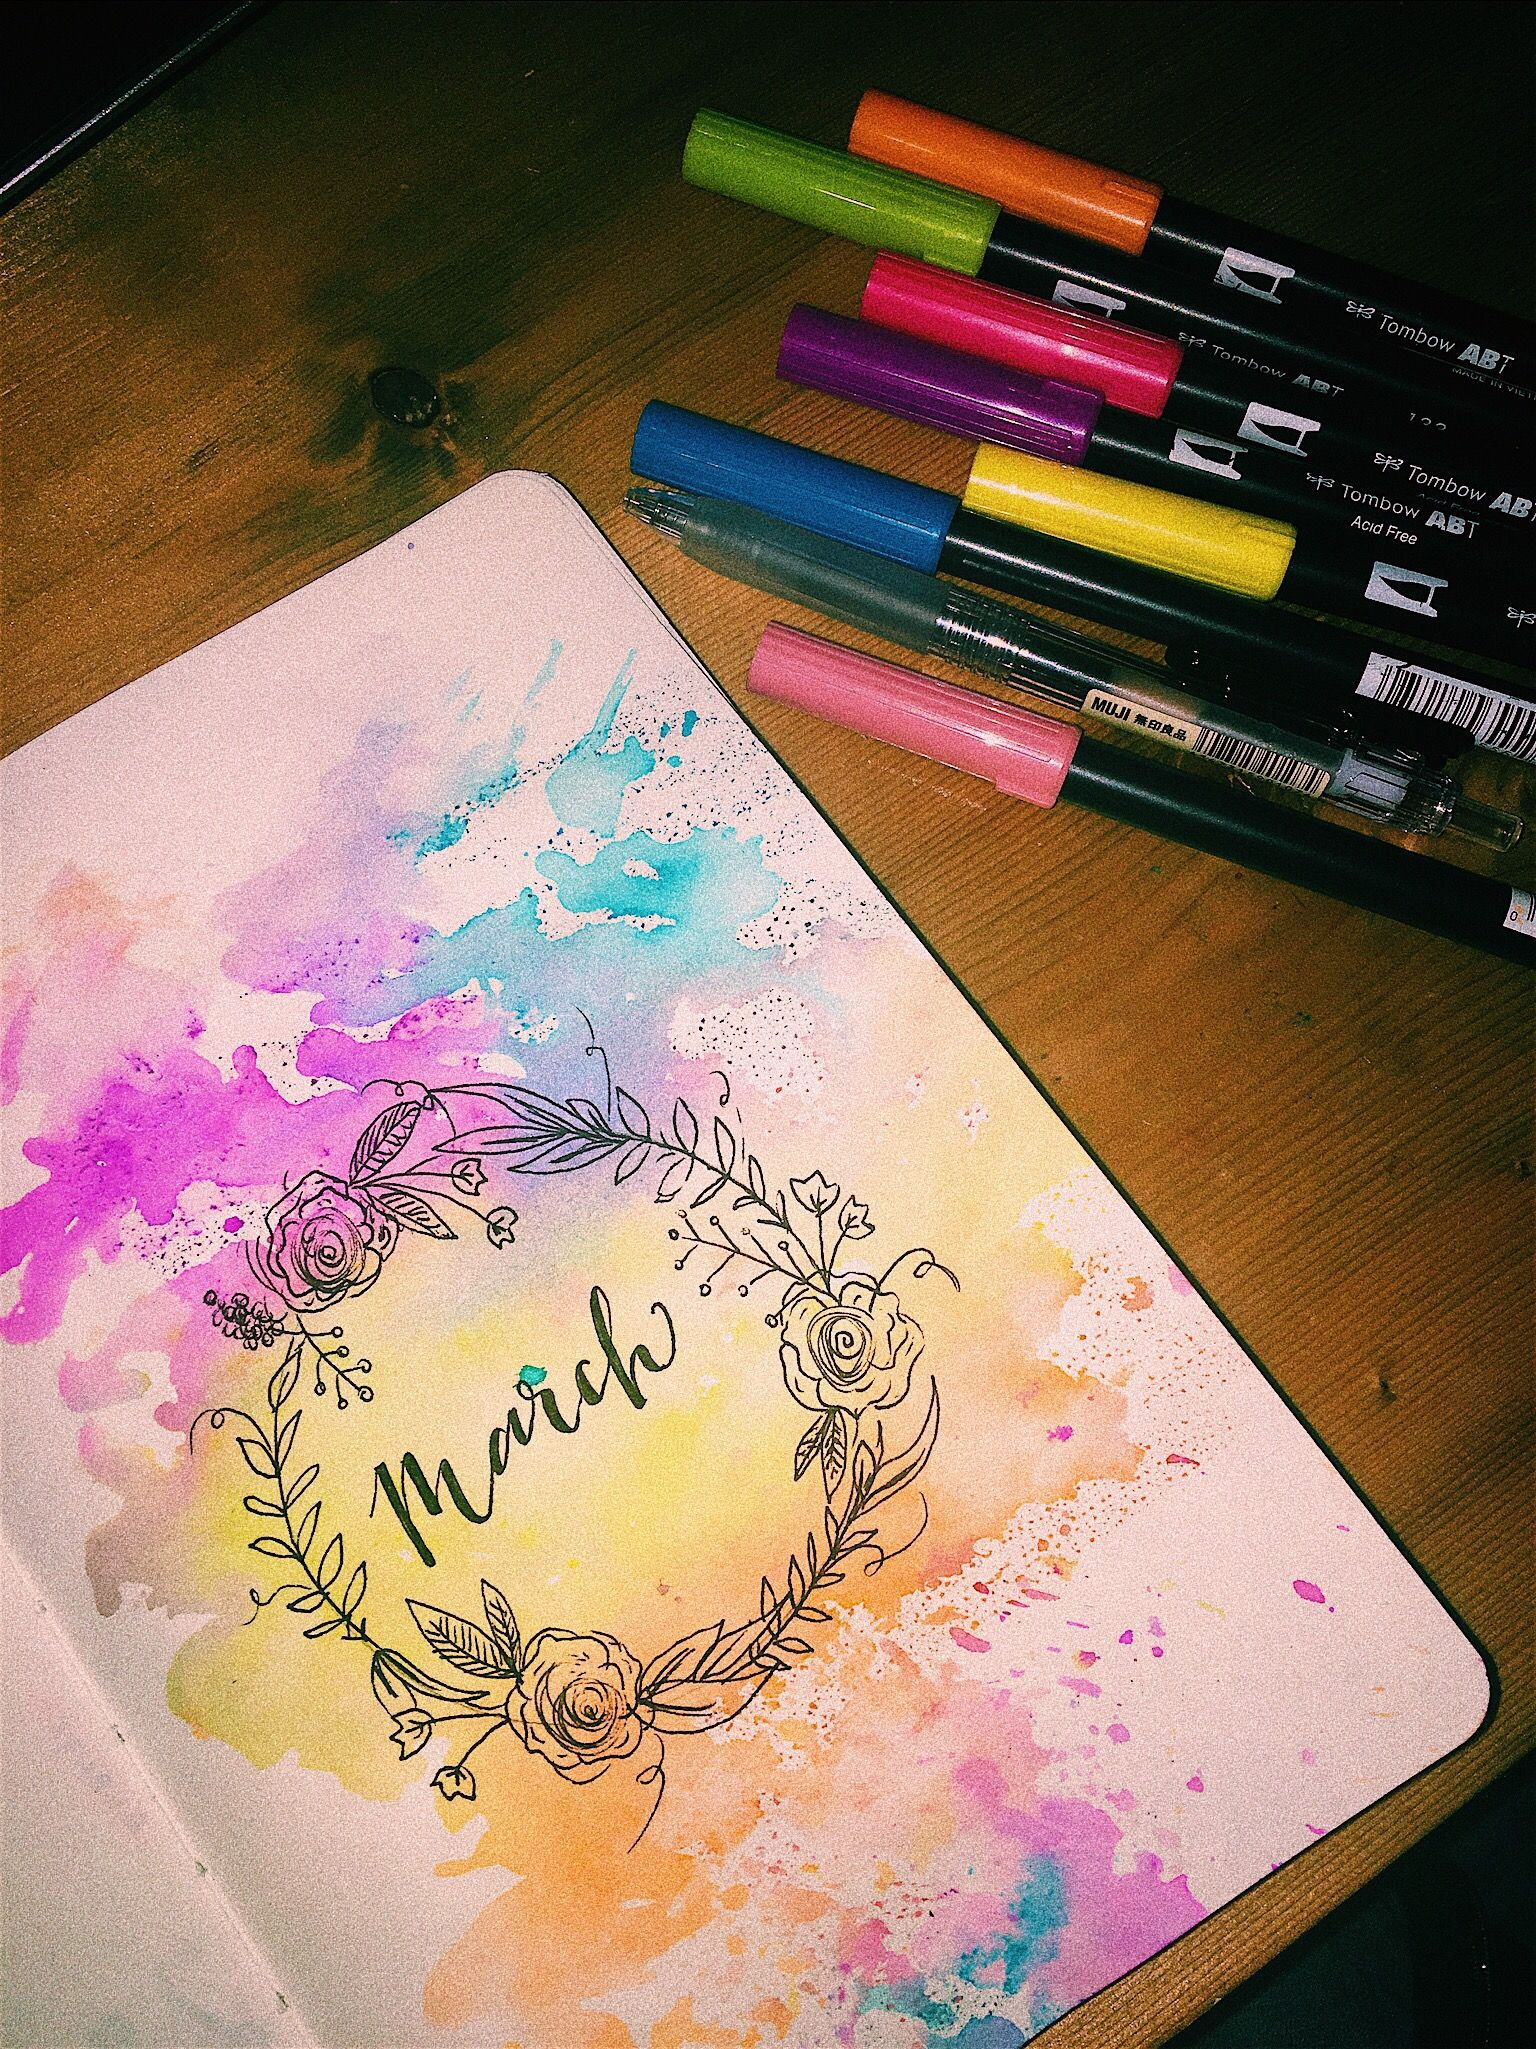 March Cover Page In Bullet Journal With Watercolor And Doodles